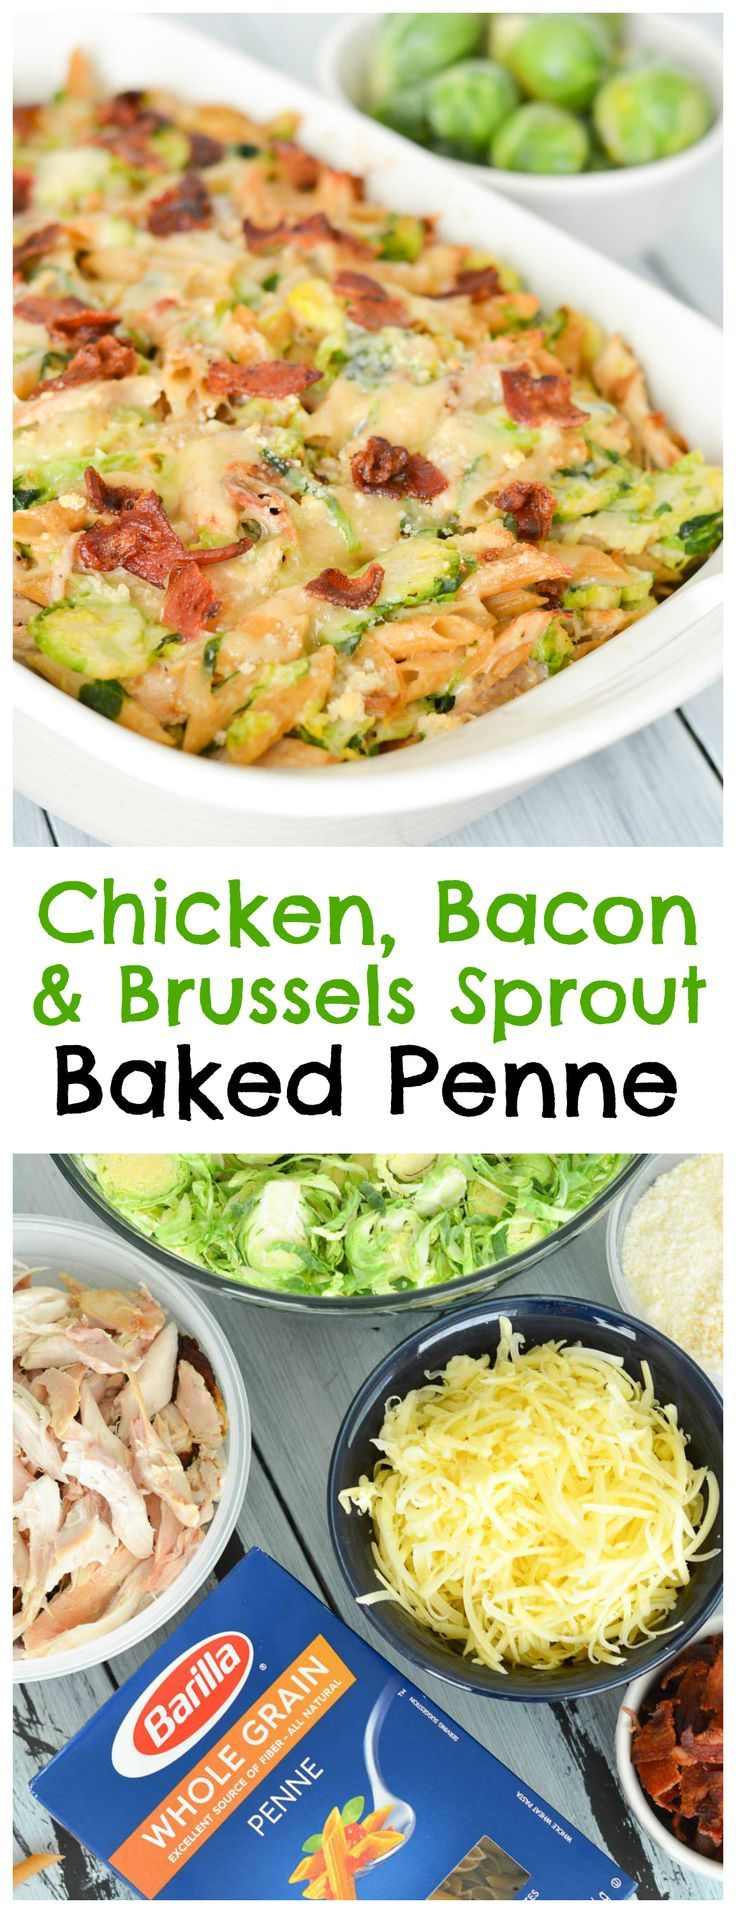 This Chicken, Bacon and Brussels Sprout Baked Penne is a cozy, comforting winter meal that's perfect for holiday get-togethers. Packed with whole grain penne, plenty of veggies and chicken, it'll fuel you up for the busy season ahead! #FamilyPastaTime #ad @BarillaUS